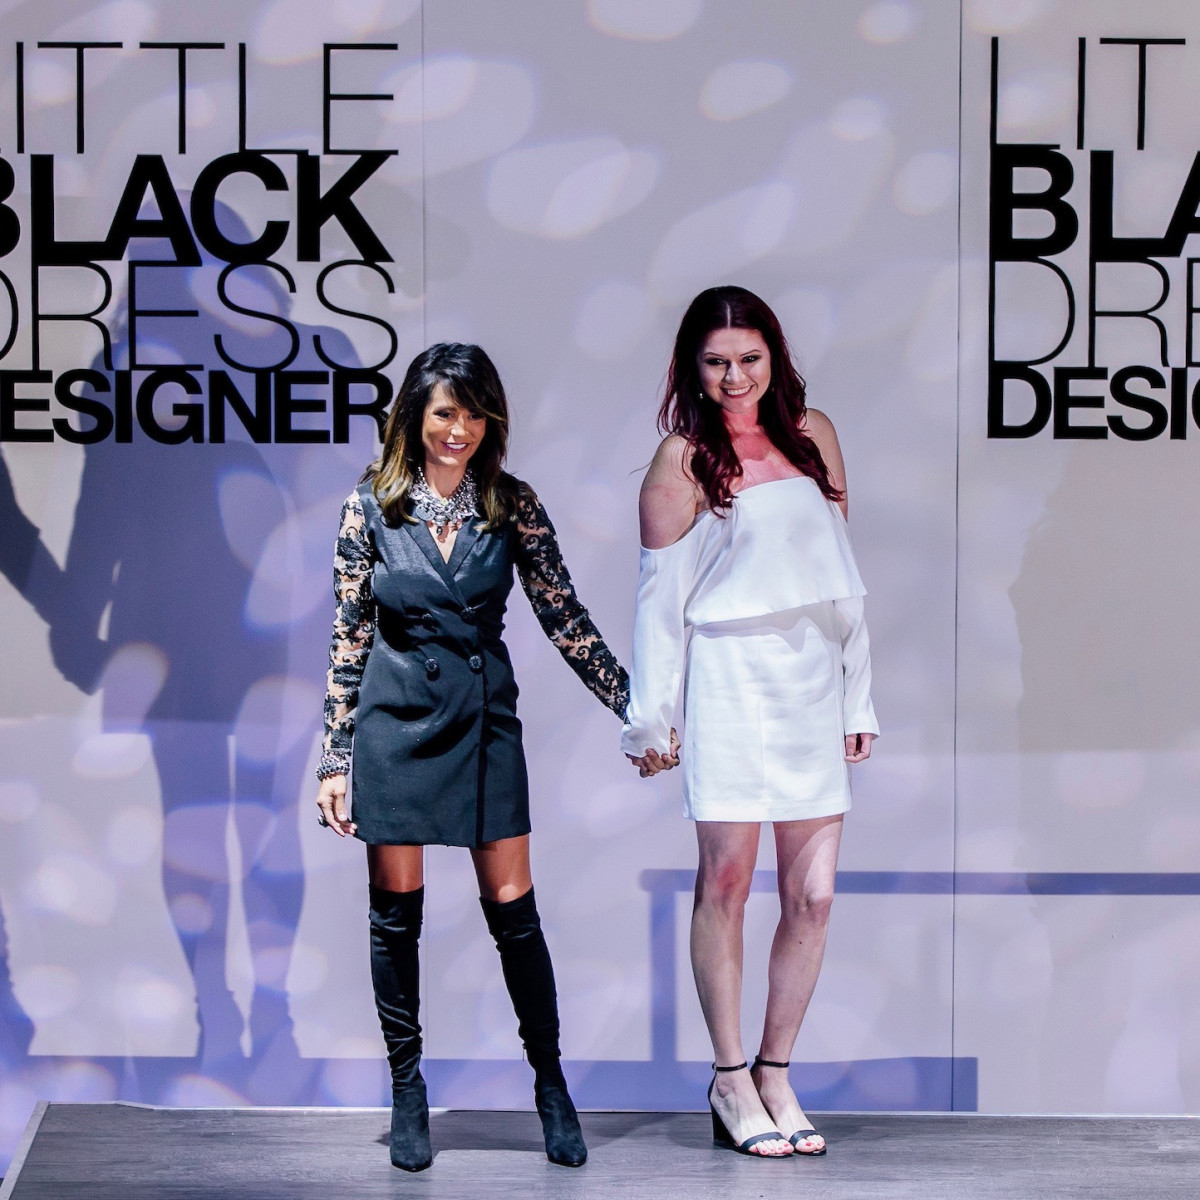 Diane Caplan, Blanca Vargas at Little Black Dress Designer 2017